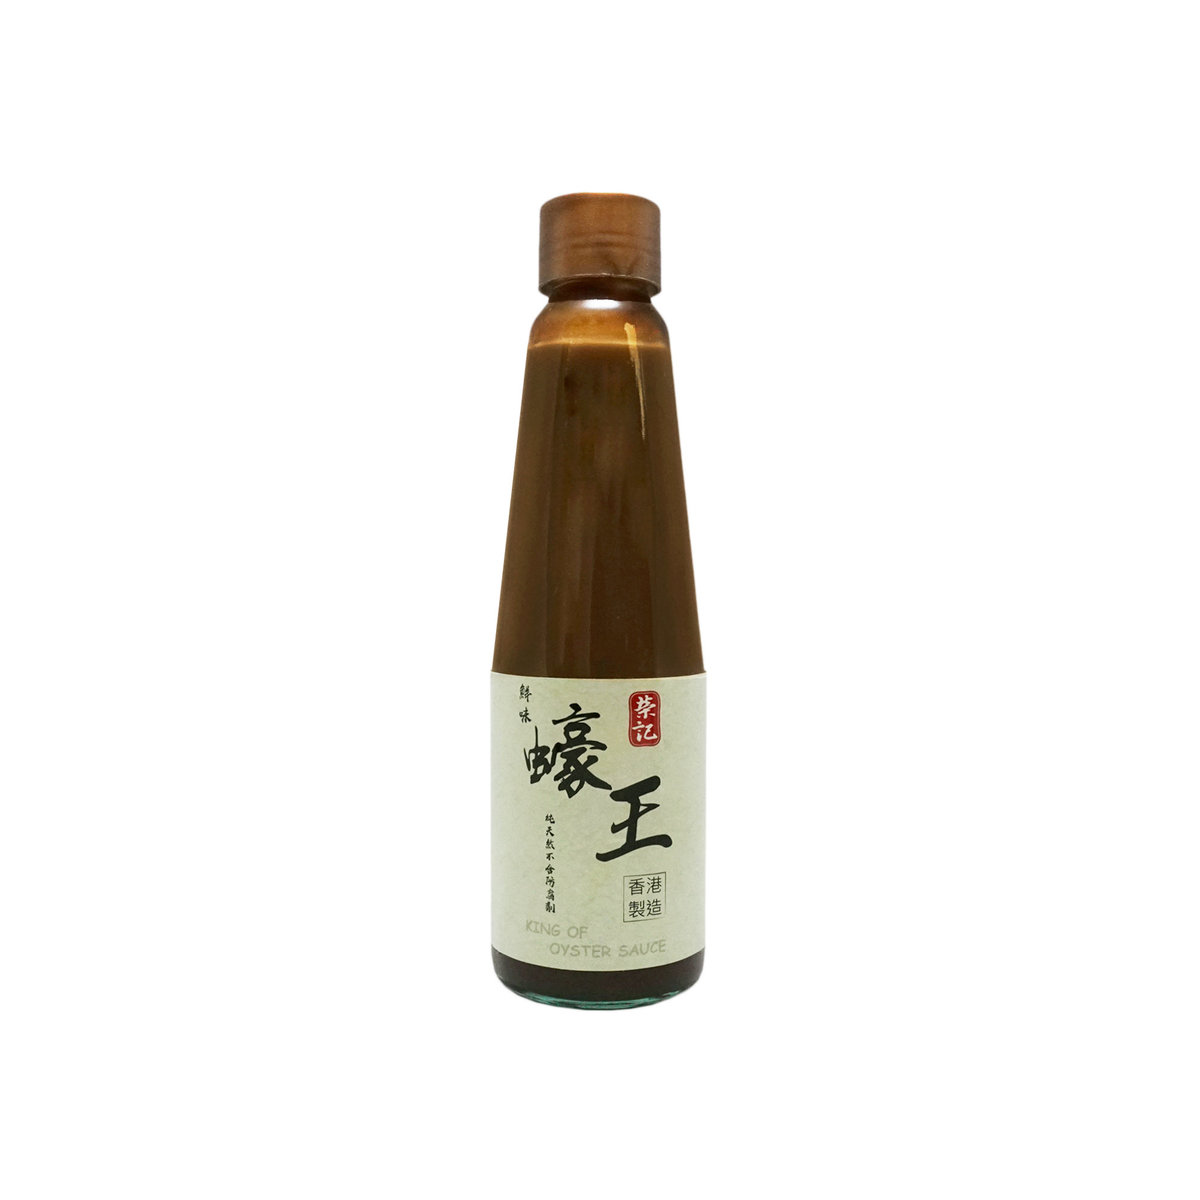 Wing Kee - King Of Oyster Sauce (350g) Made in HK - With Lau Fau Shan Oyster